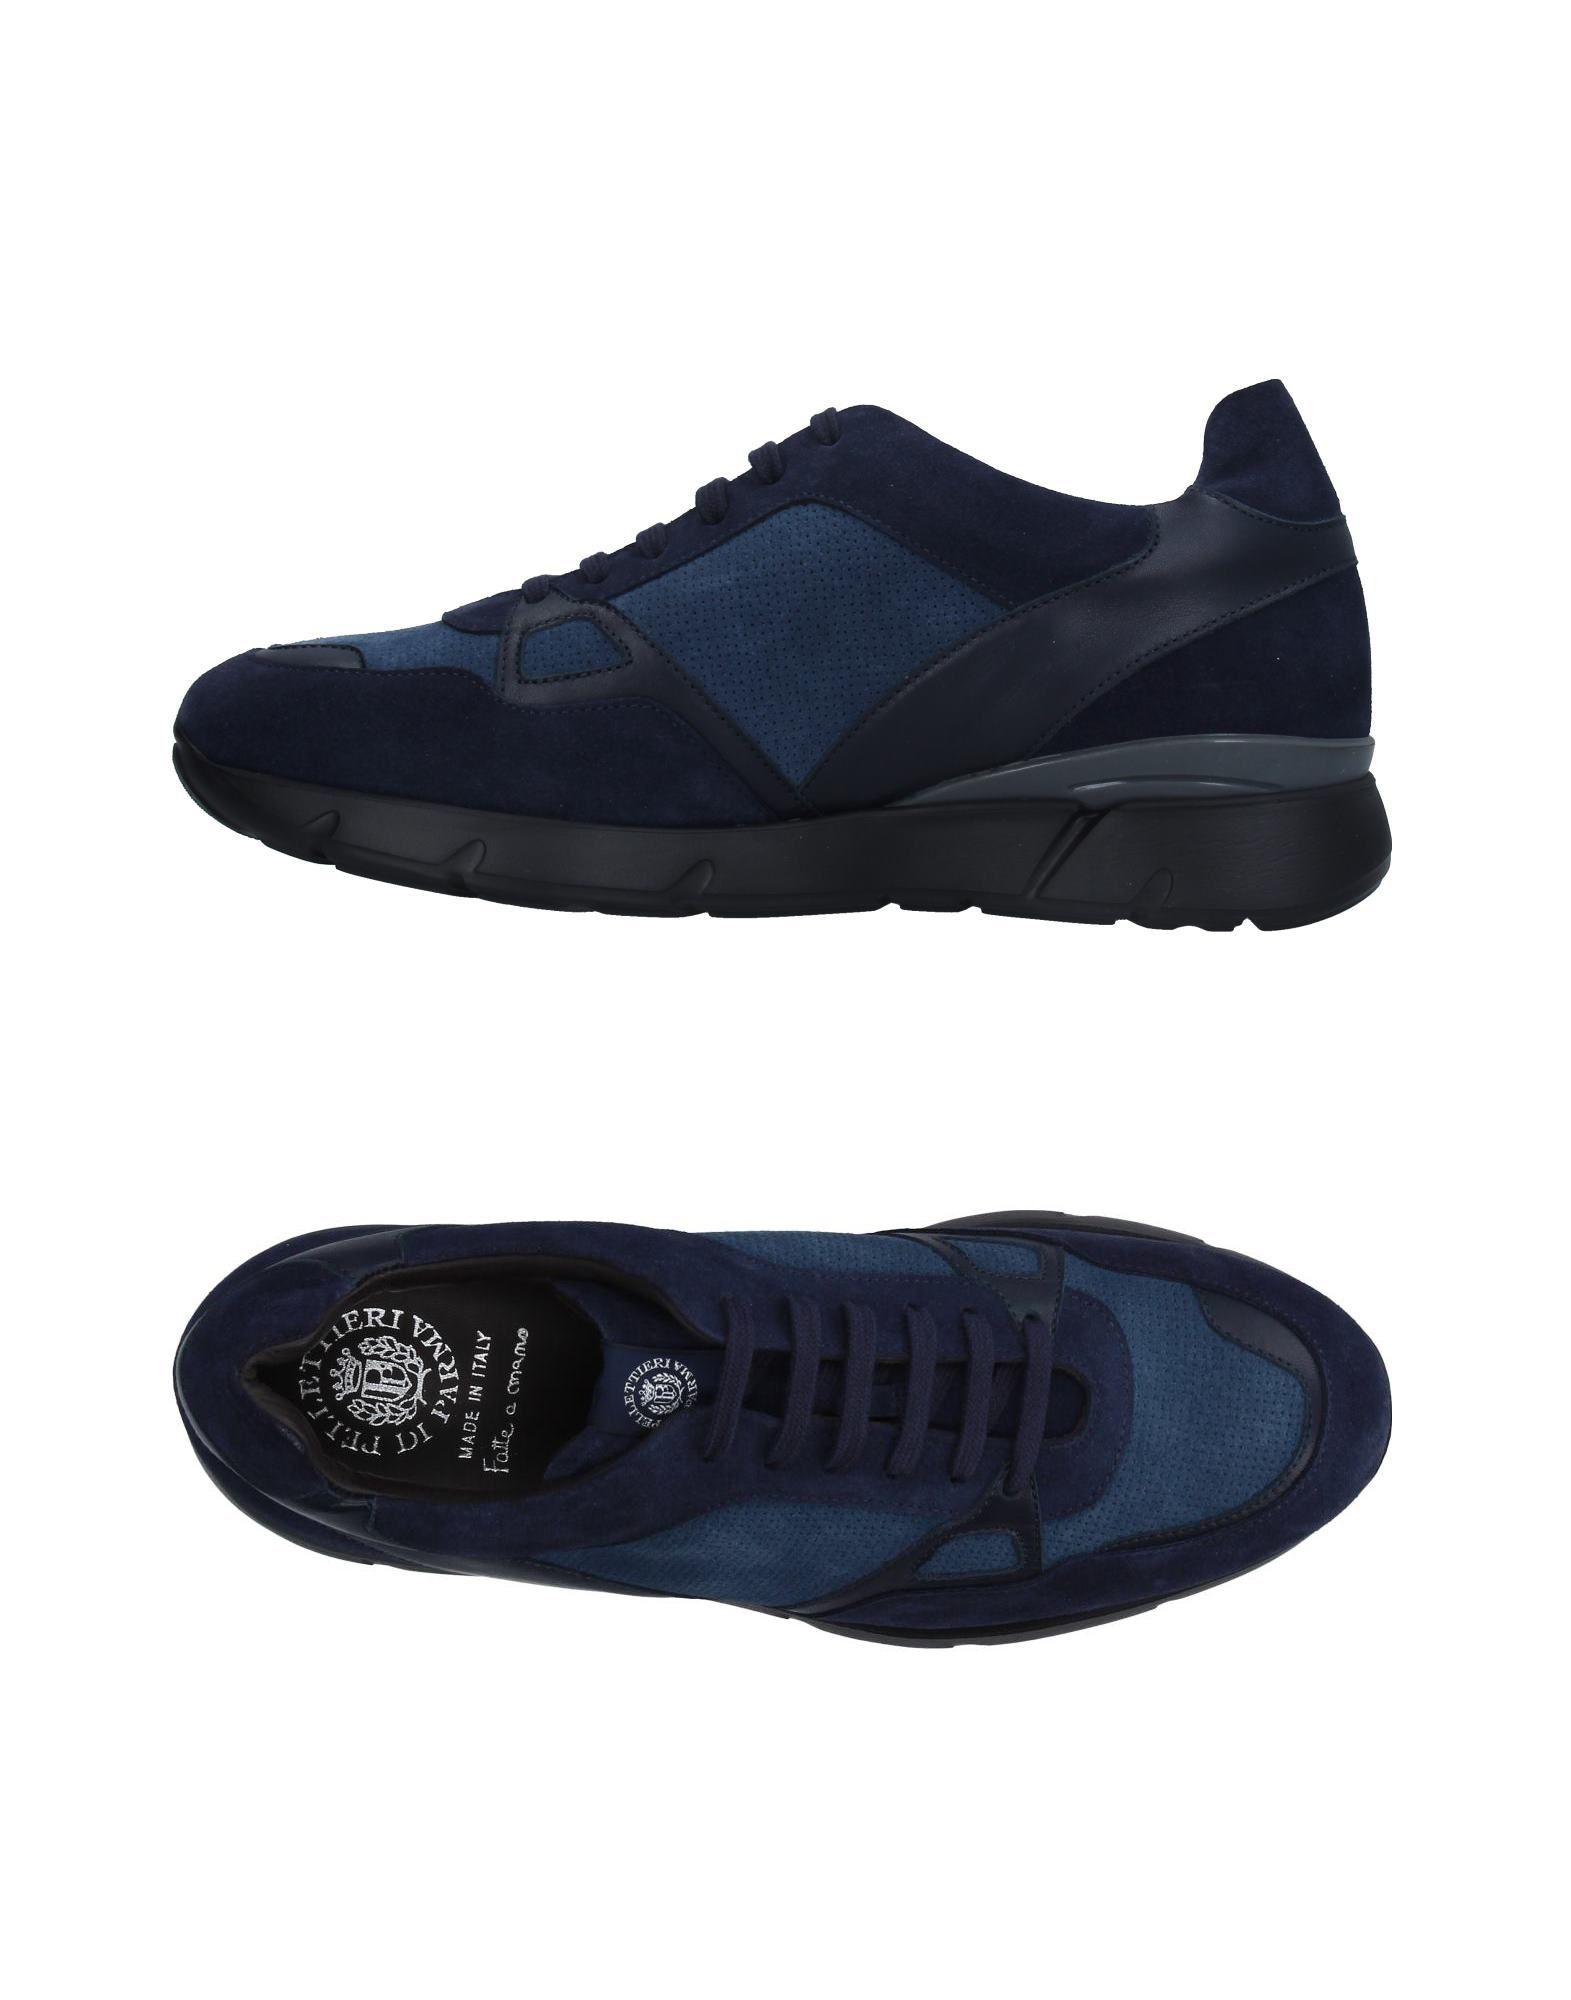 Pellettieri Di  Parma Di Sneakers - Men Pellettieri Di Parma  Parma Sneakers online on  Canada - 11264966EN e983ce